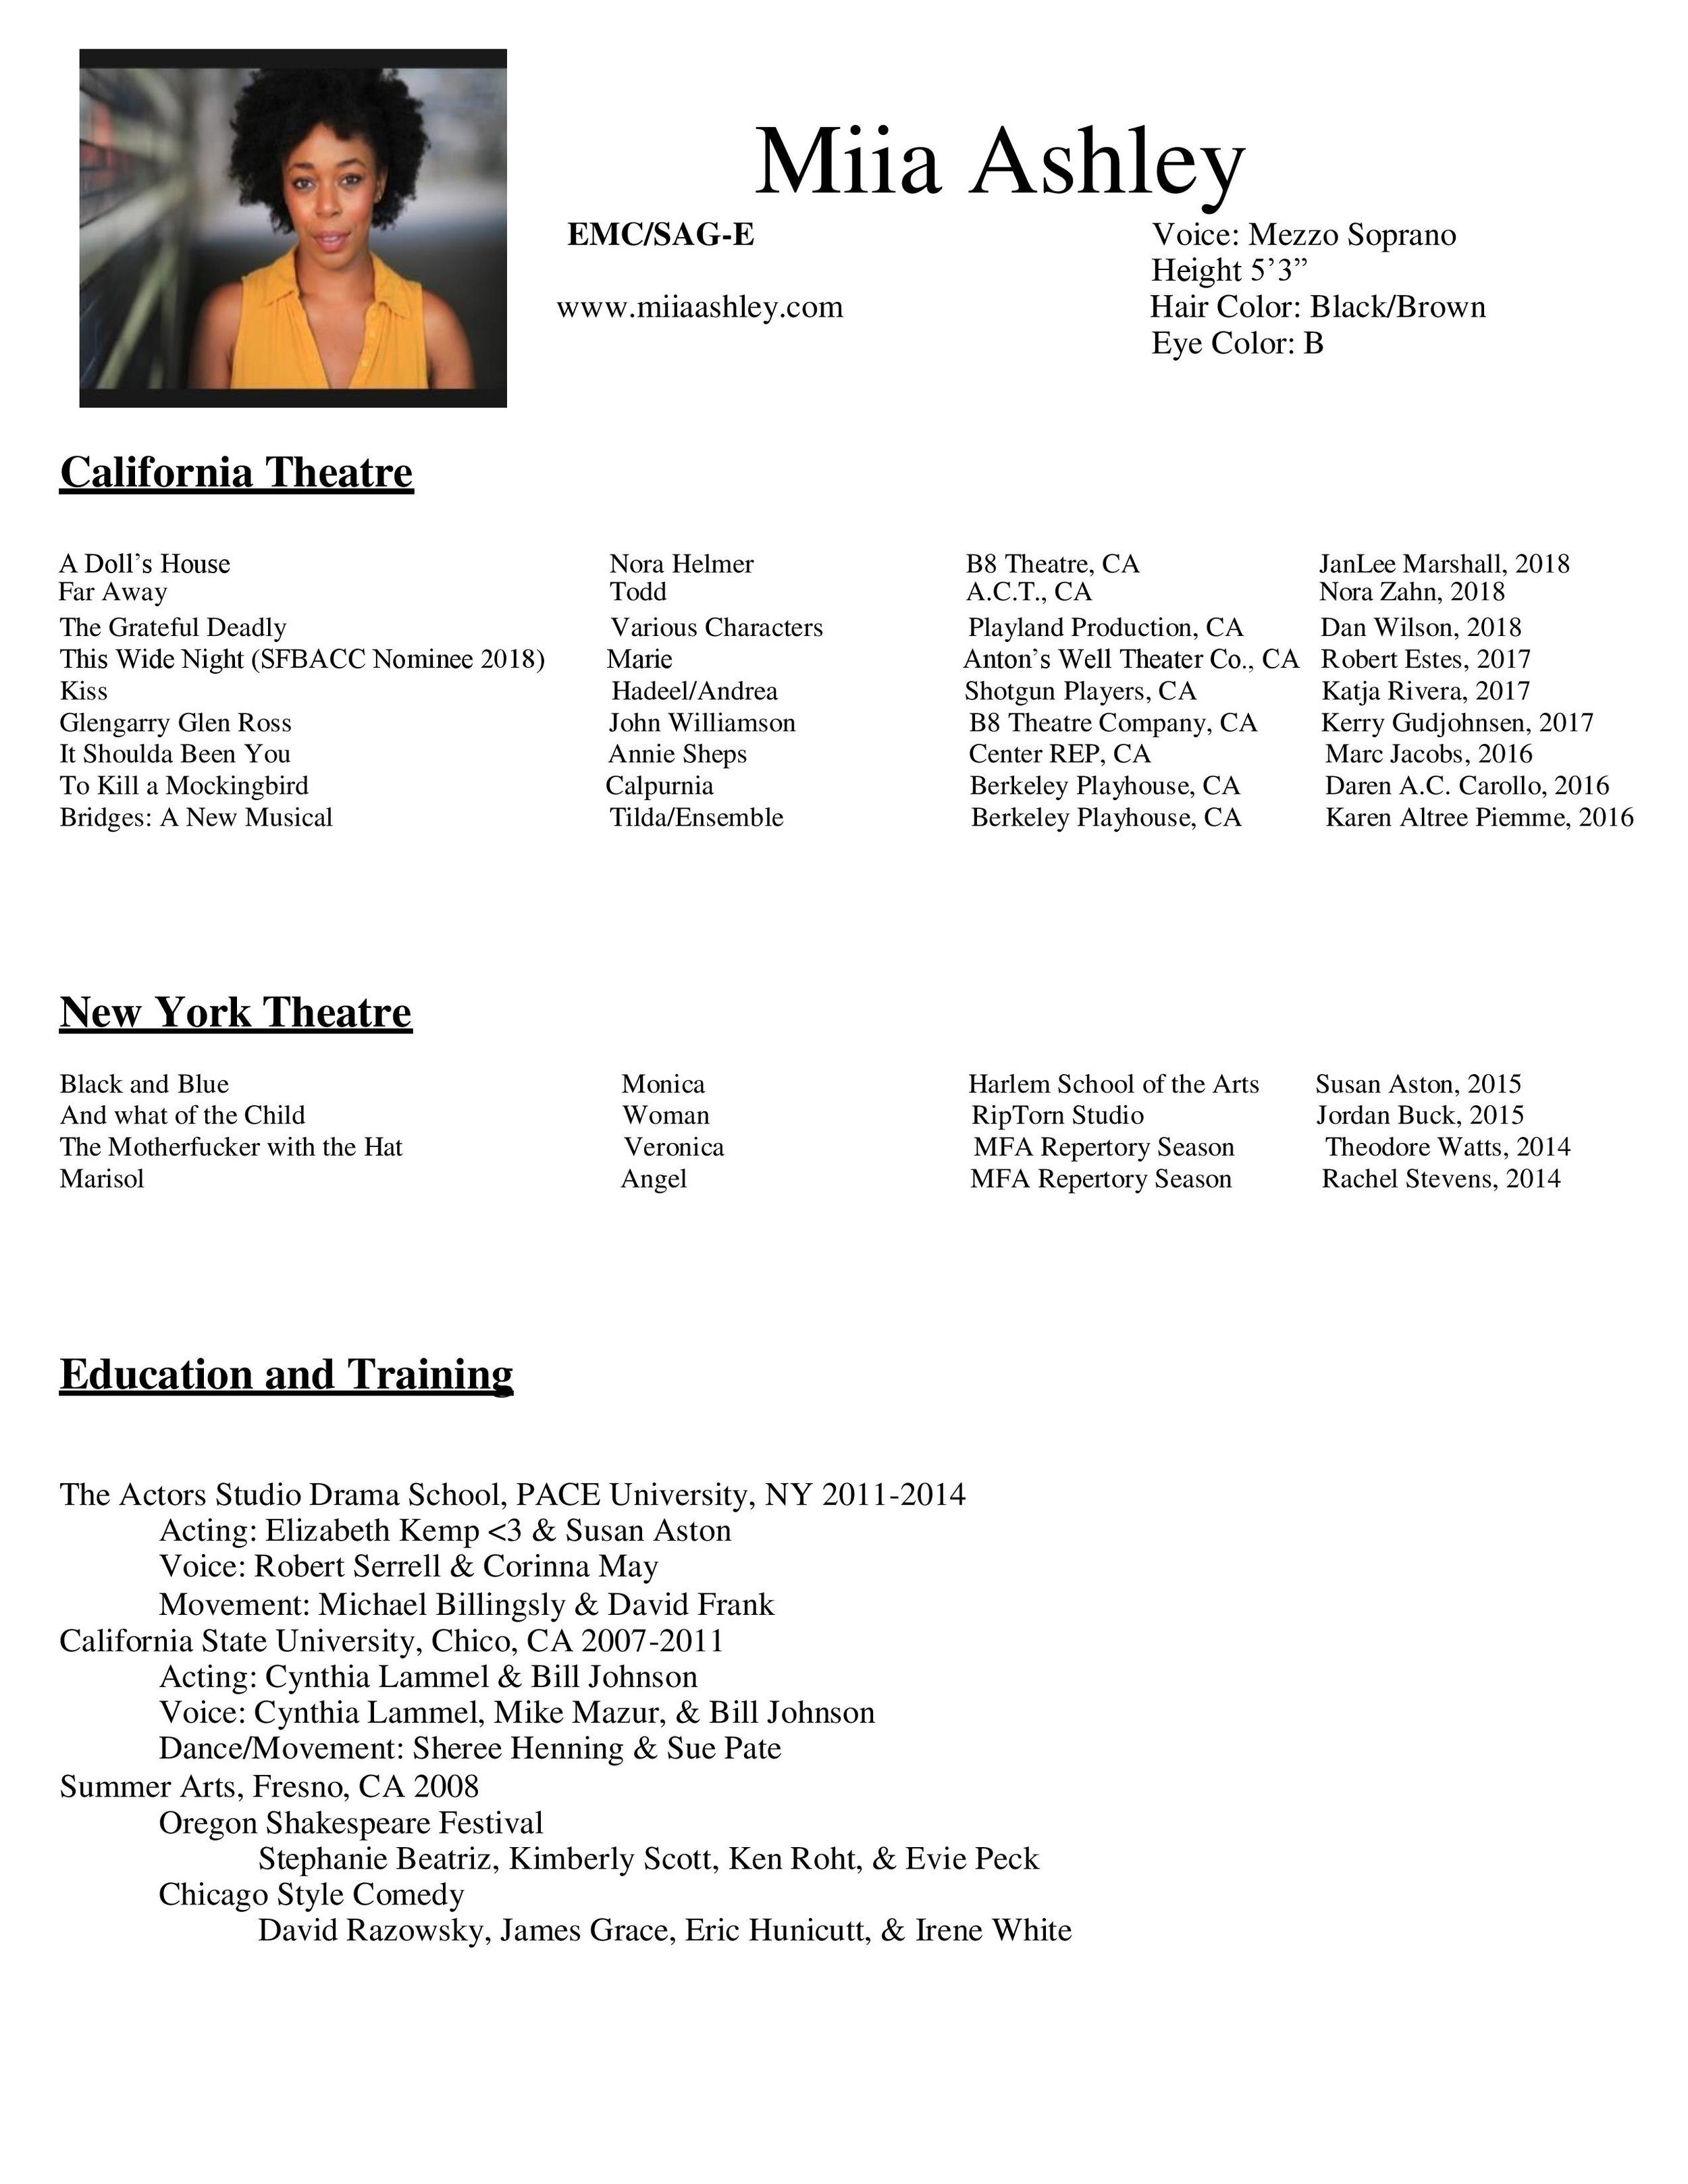 Miia Ashley - THEATRICAL RESUME-page-001.jpg